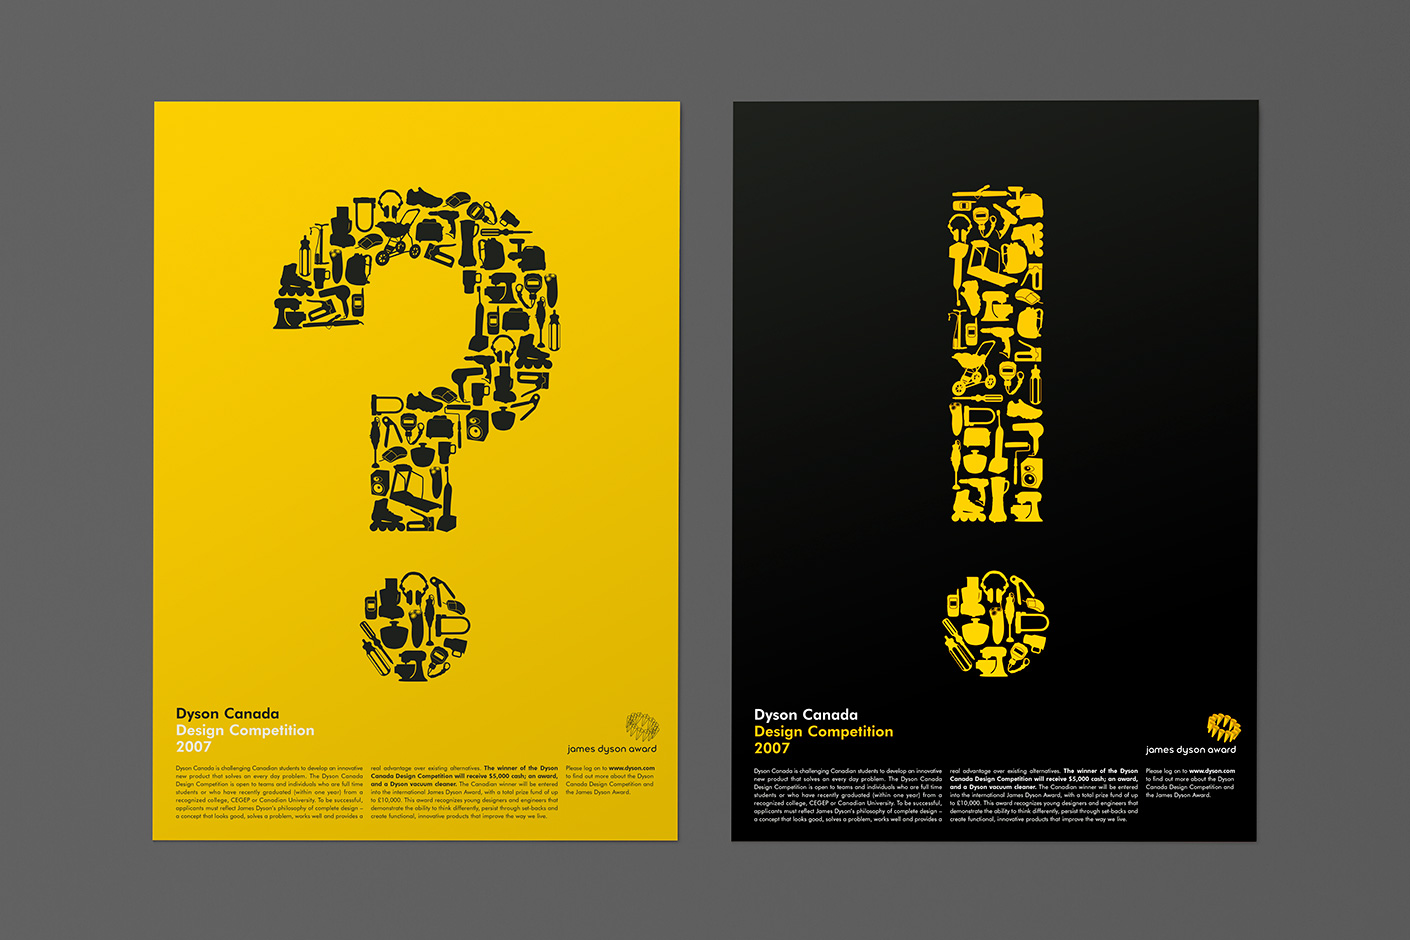 Poster design competition - Dyson Design Competition